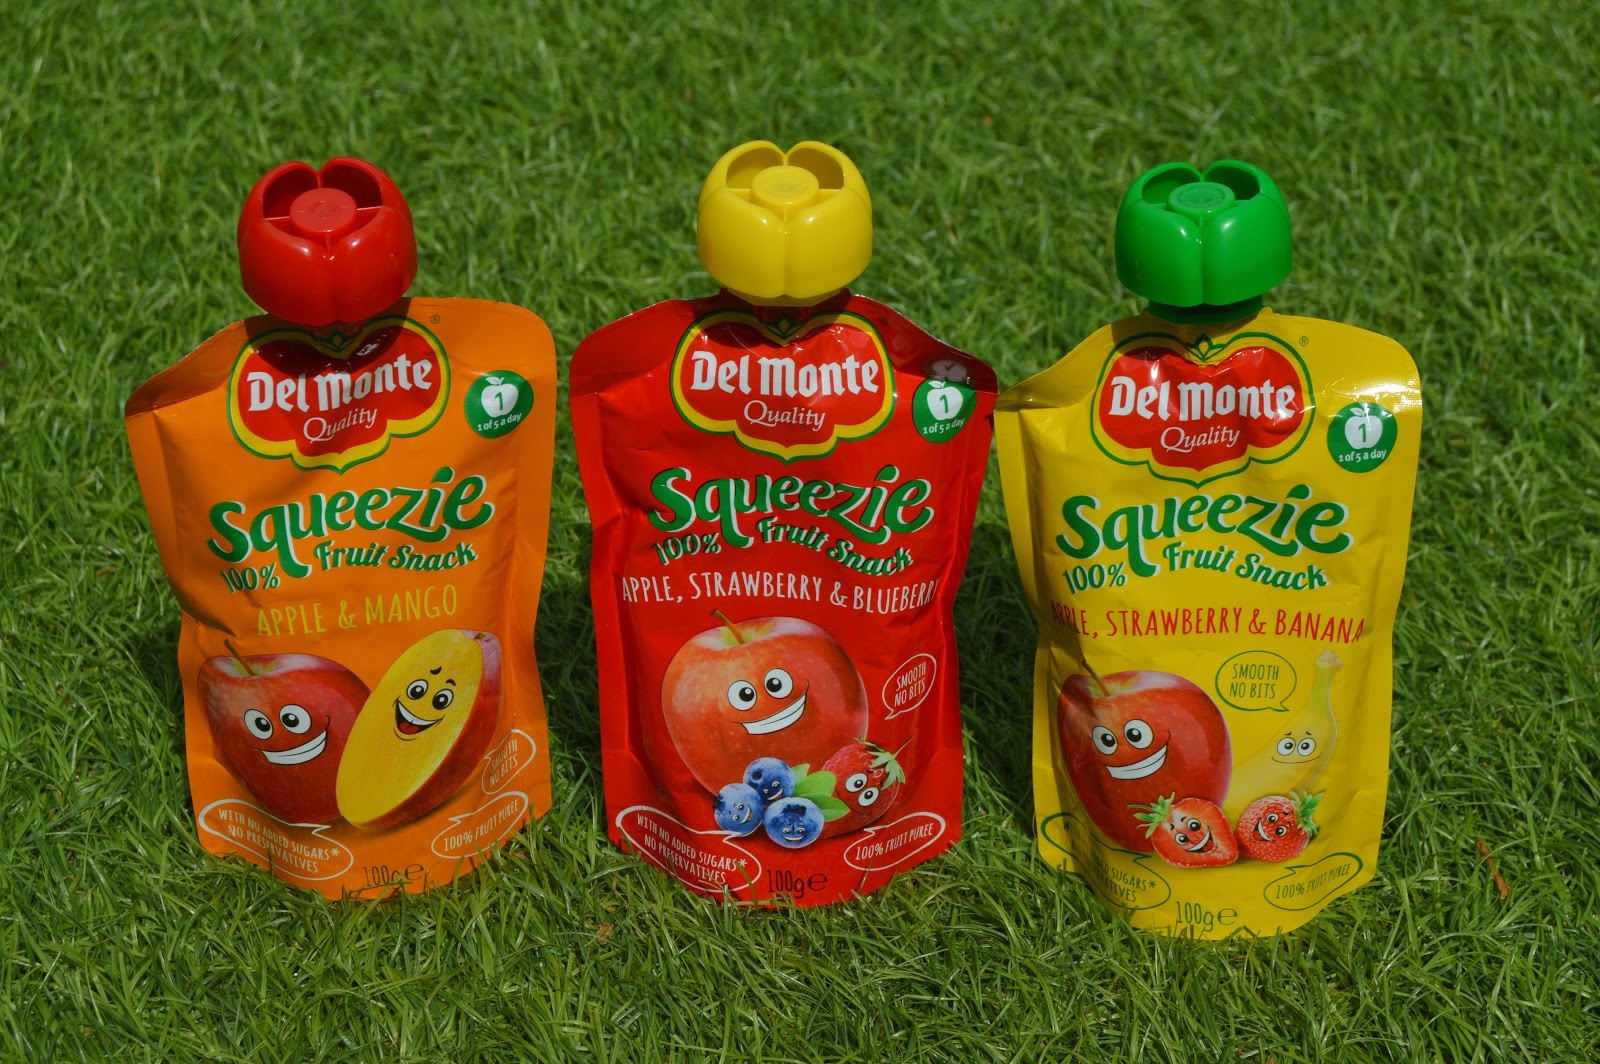 Del monte fruit snack